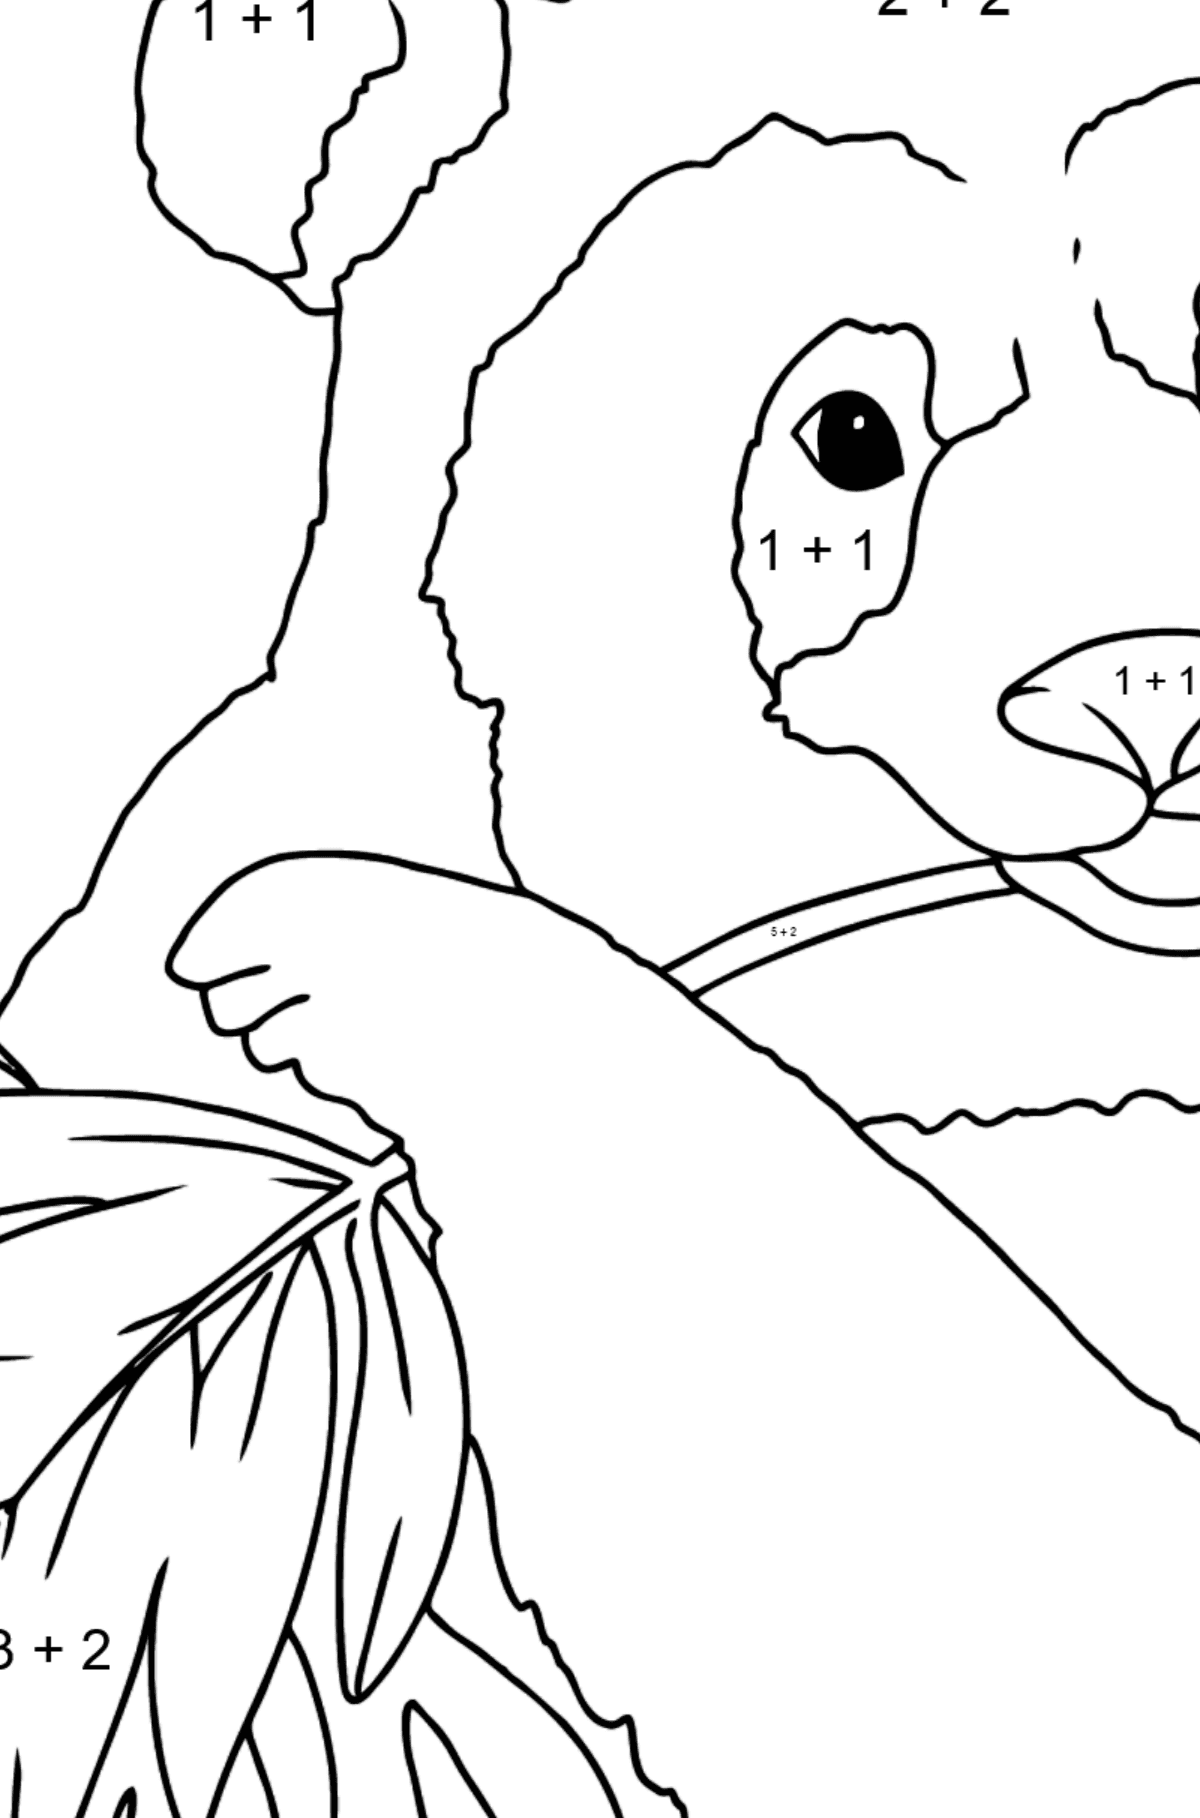 Coloring Page  - A Panda is Eating Leaves - Math Coloring - Addition for Kids